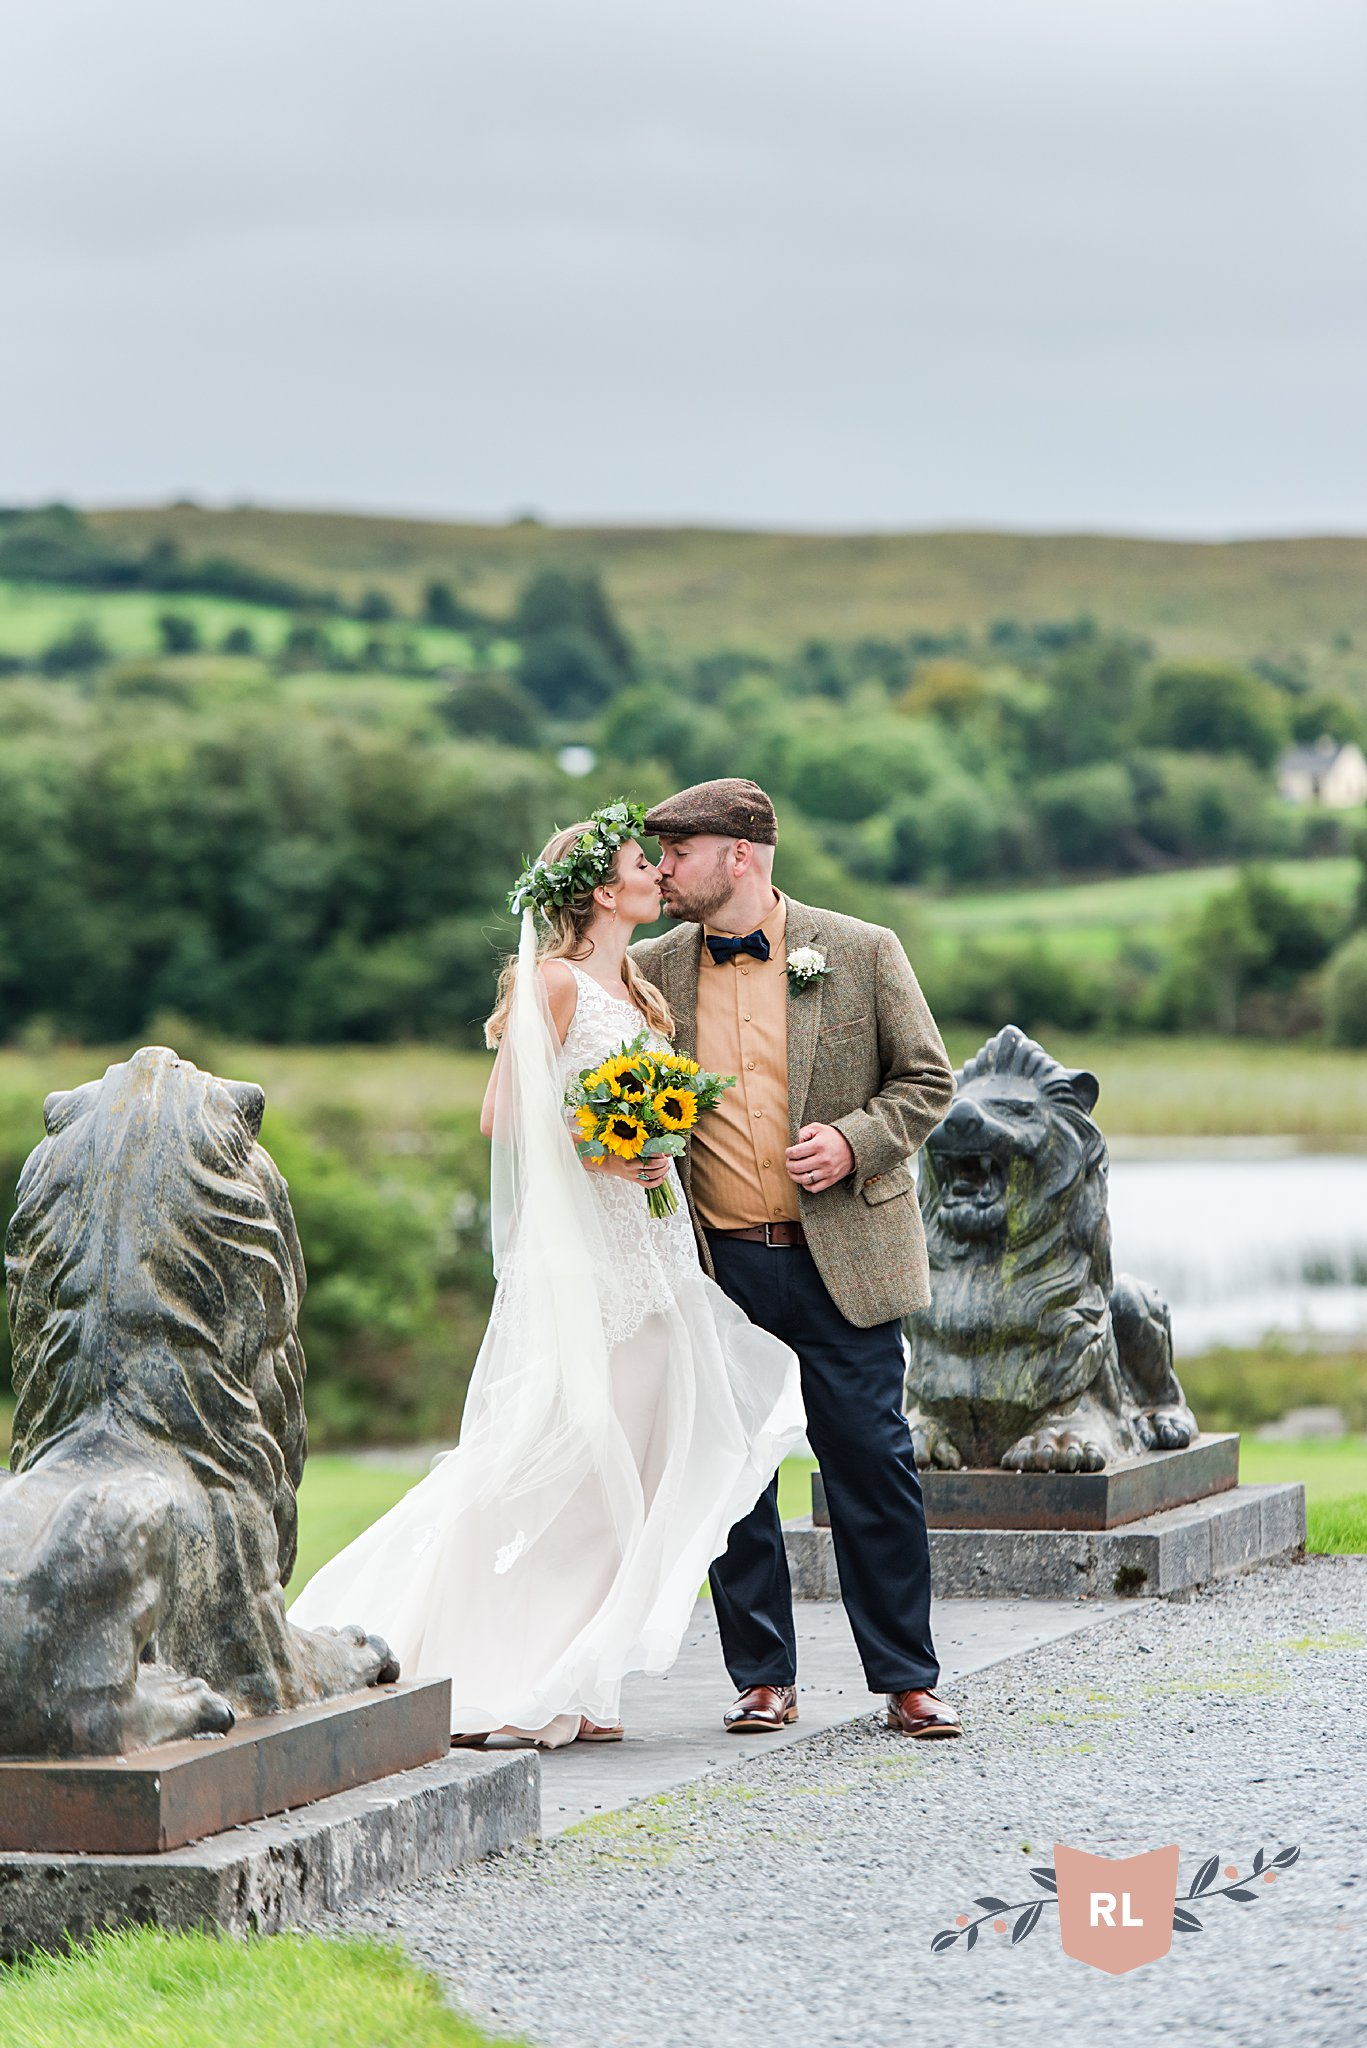 RossCastleWedding_Ireland_1033.jpg